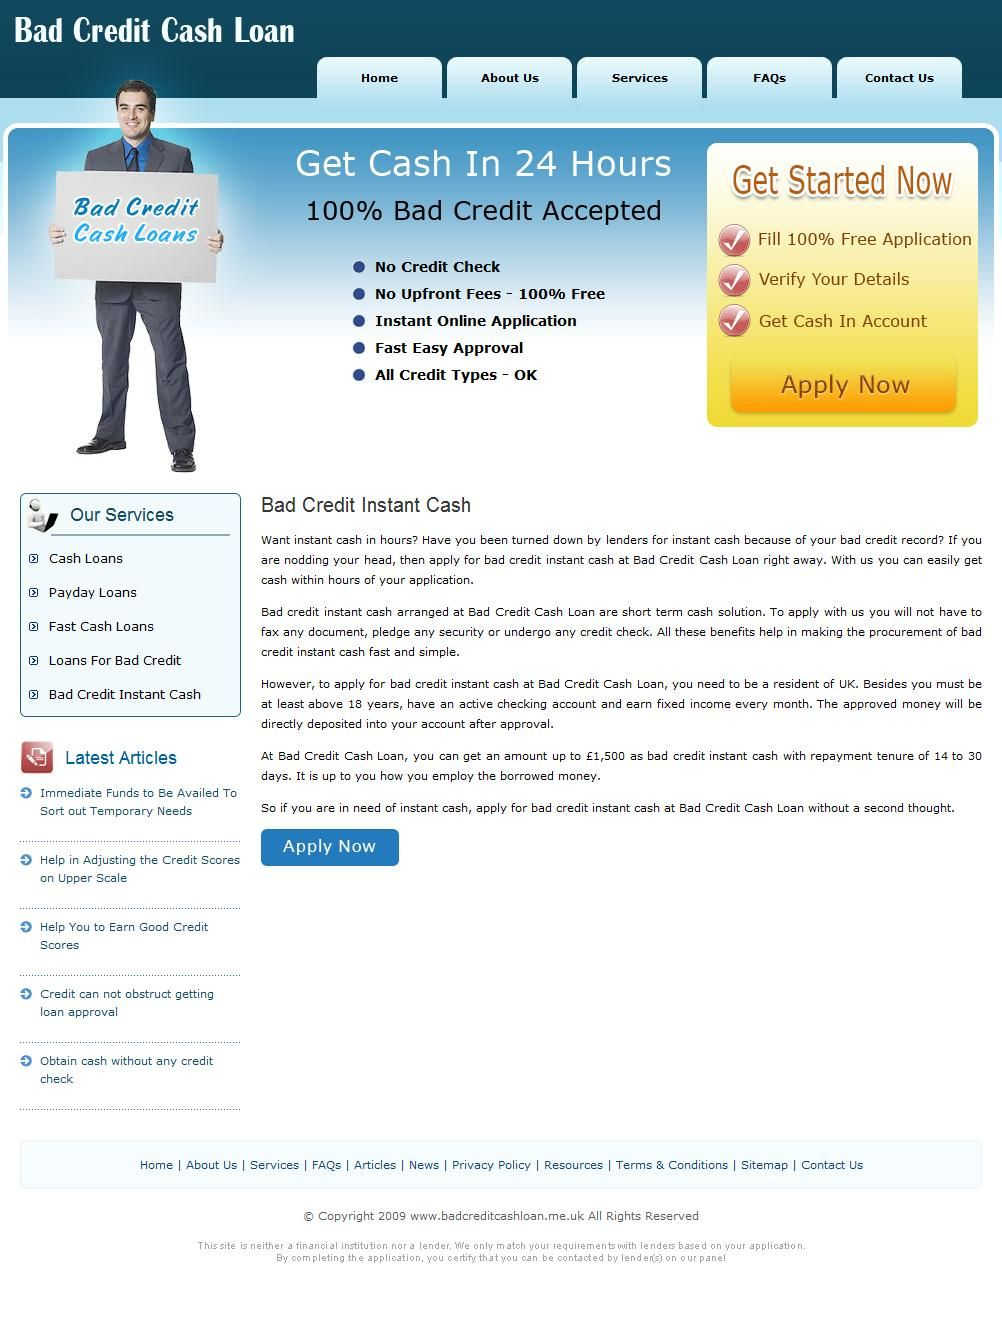 Are You Want Instant Cash Within Hours We Arrange Bad Credit